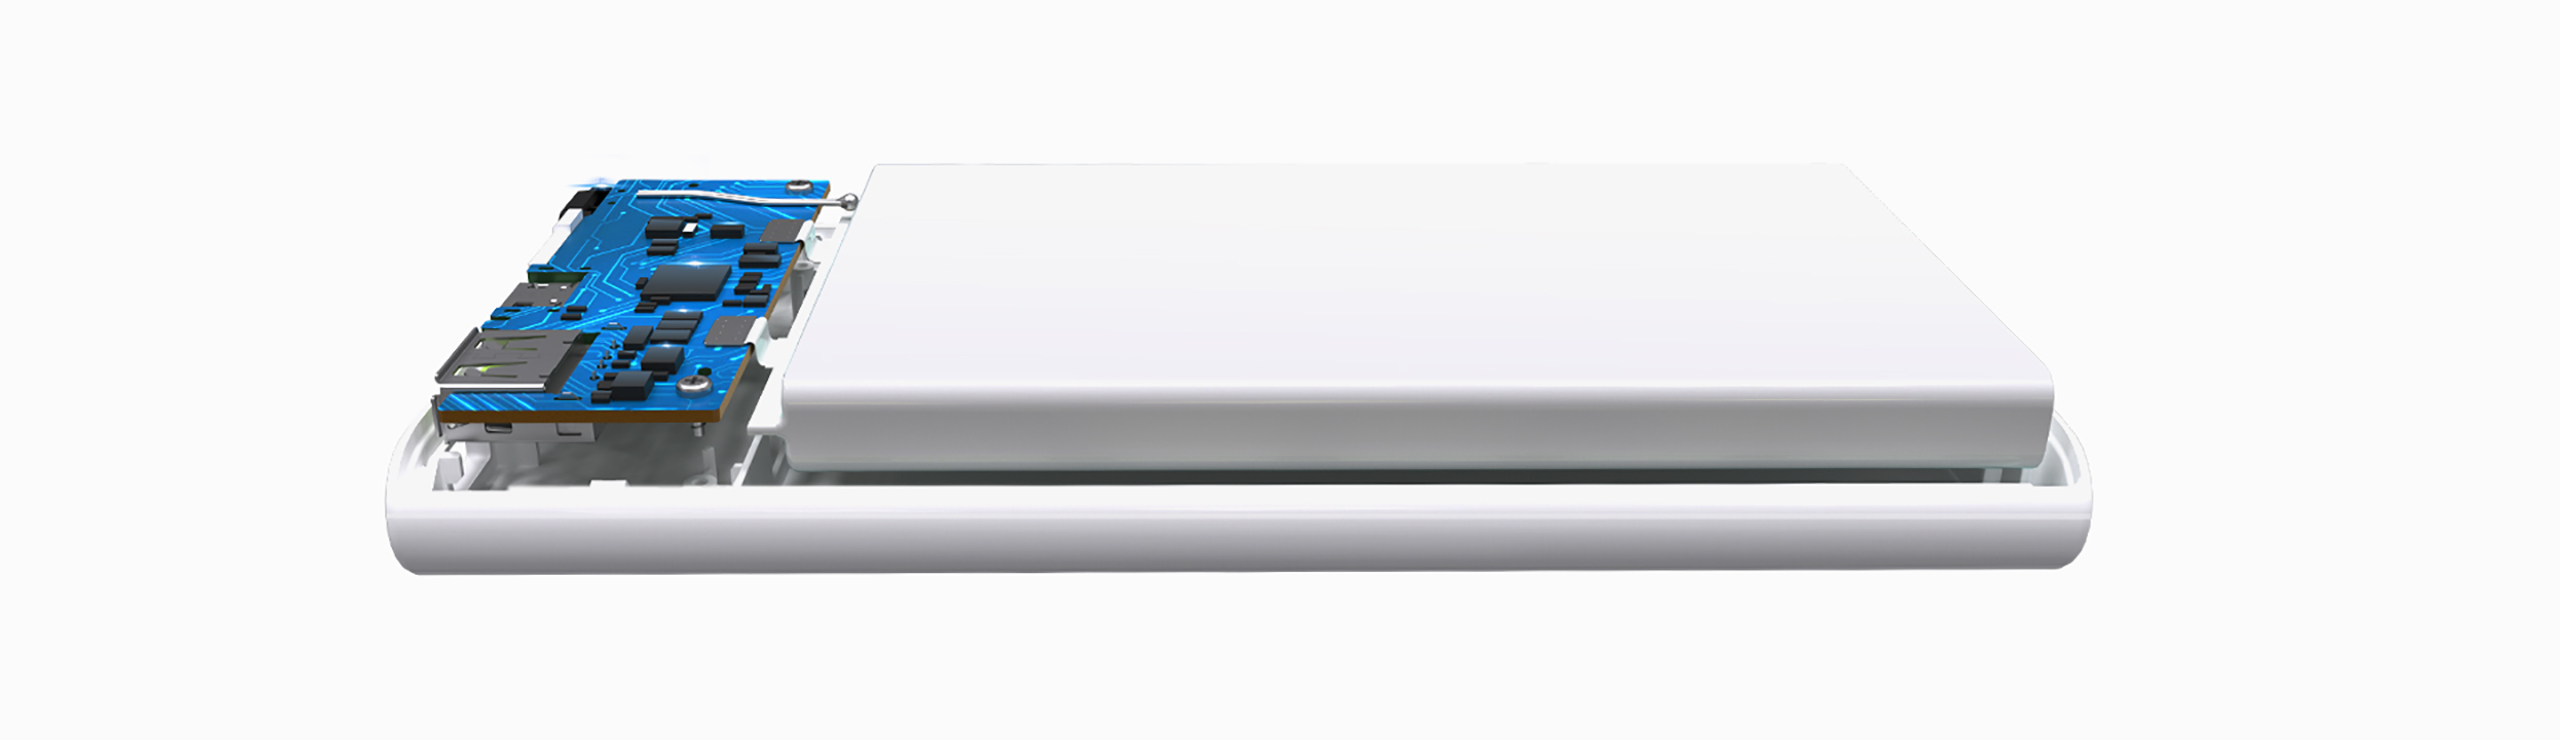 HUAWEI Power Bank 10000mAh (MAX 18W) USB-C